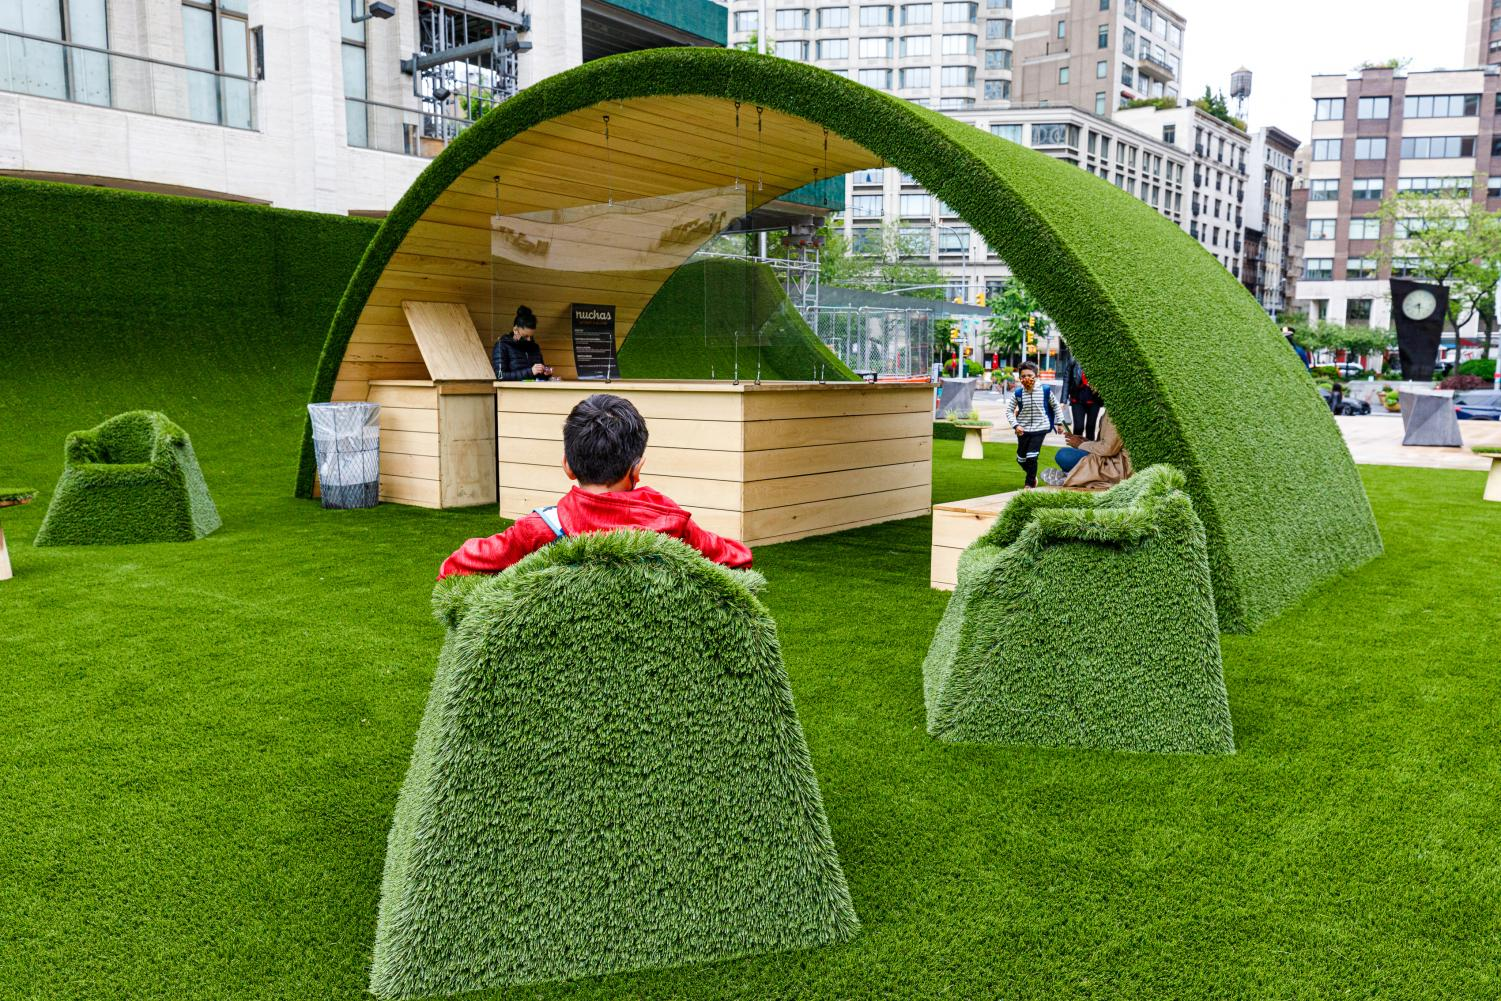 A child sits in a green grass chair in front of one of the grassy arches at The GREEN.